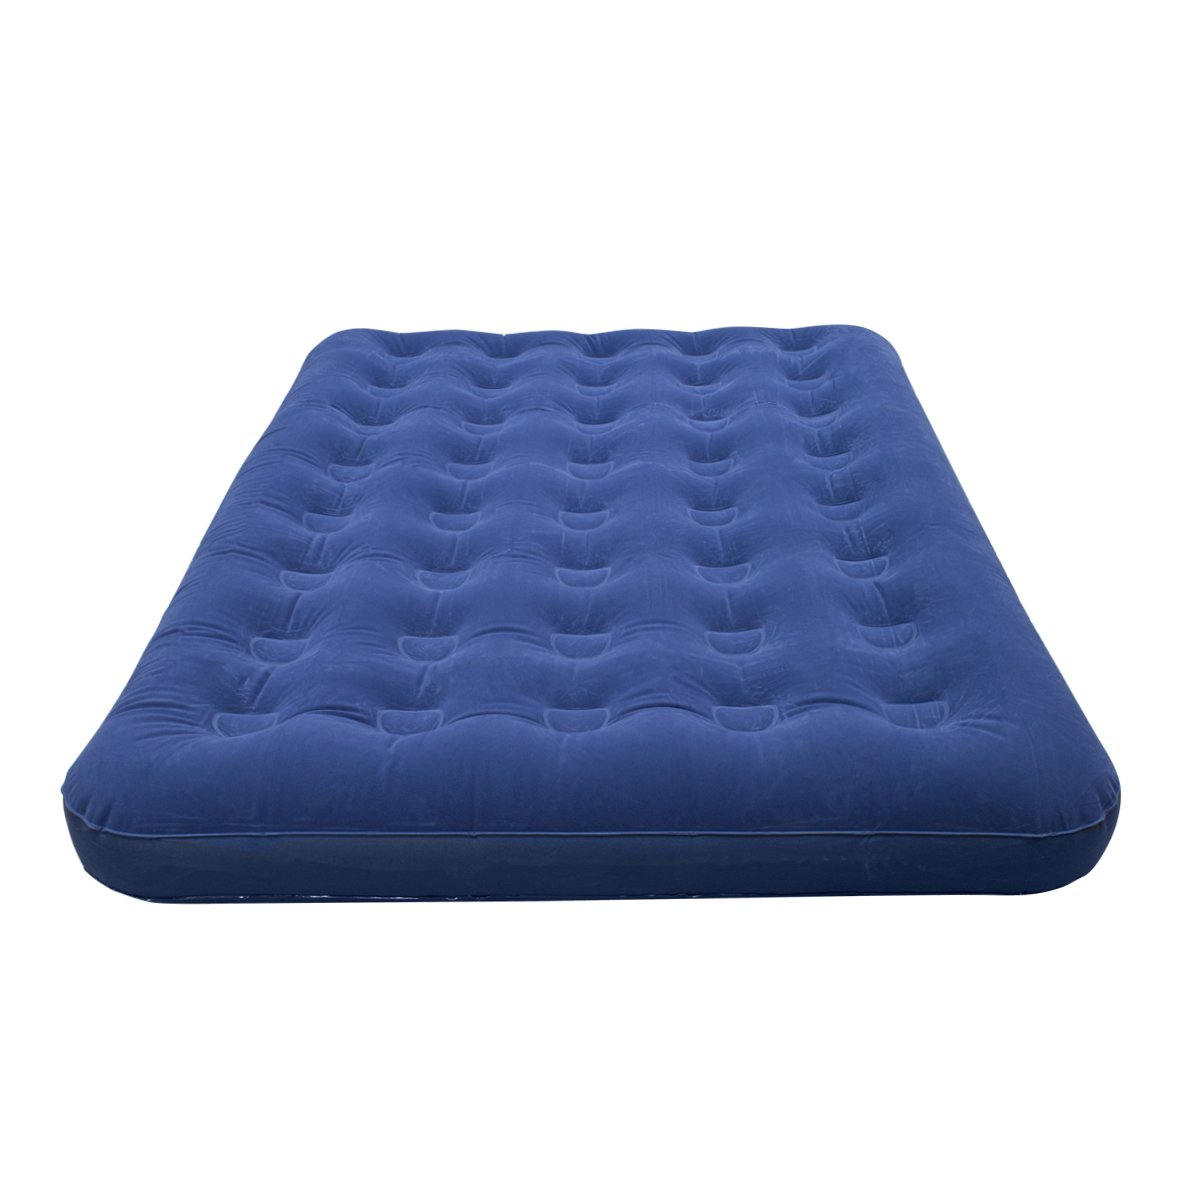 Amazon.com : Milestone Camping Double Flocked Airbed - Blue : Air Bed Mattresses : Sports & Outdoors